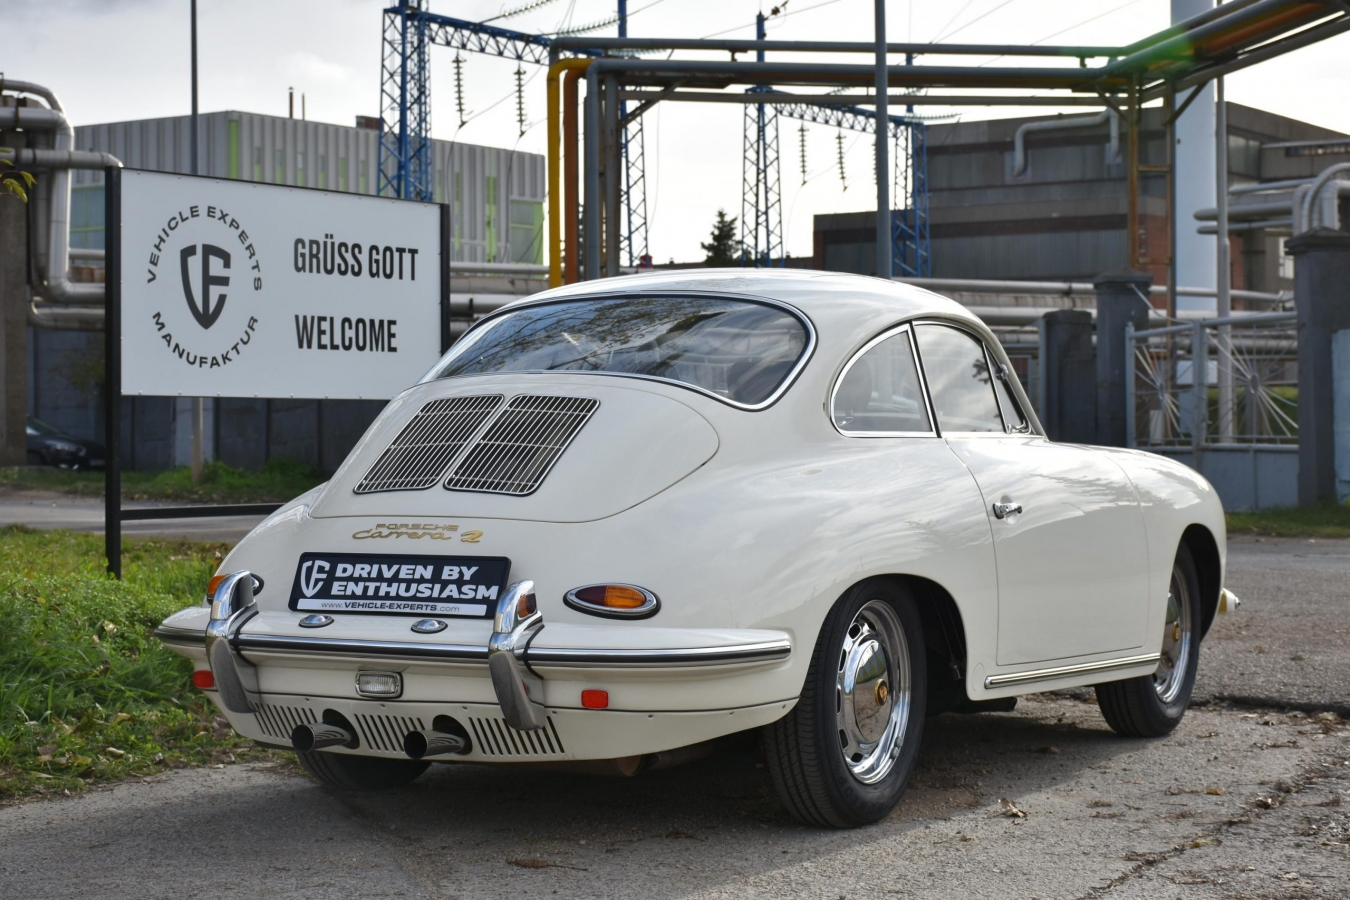 Porsche 356 C 2000 GS Carrera 2 Coupè 22